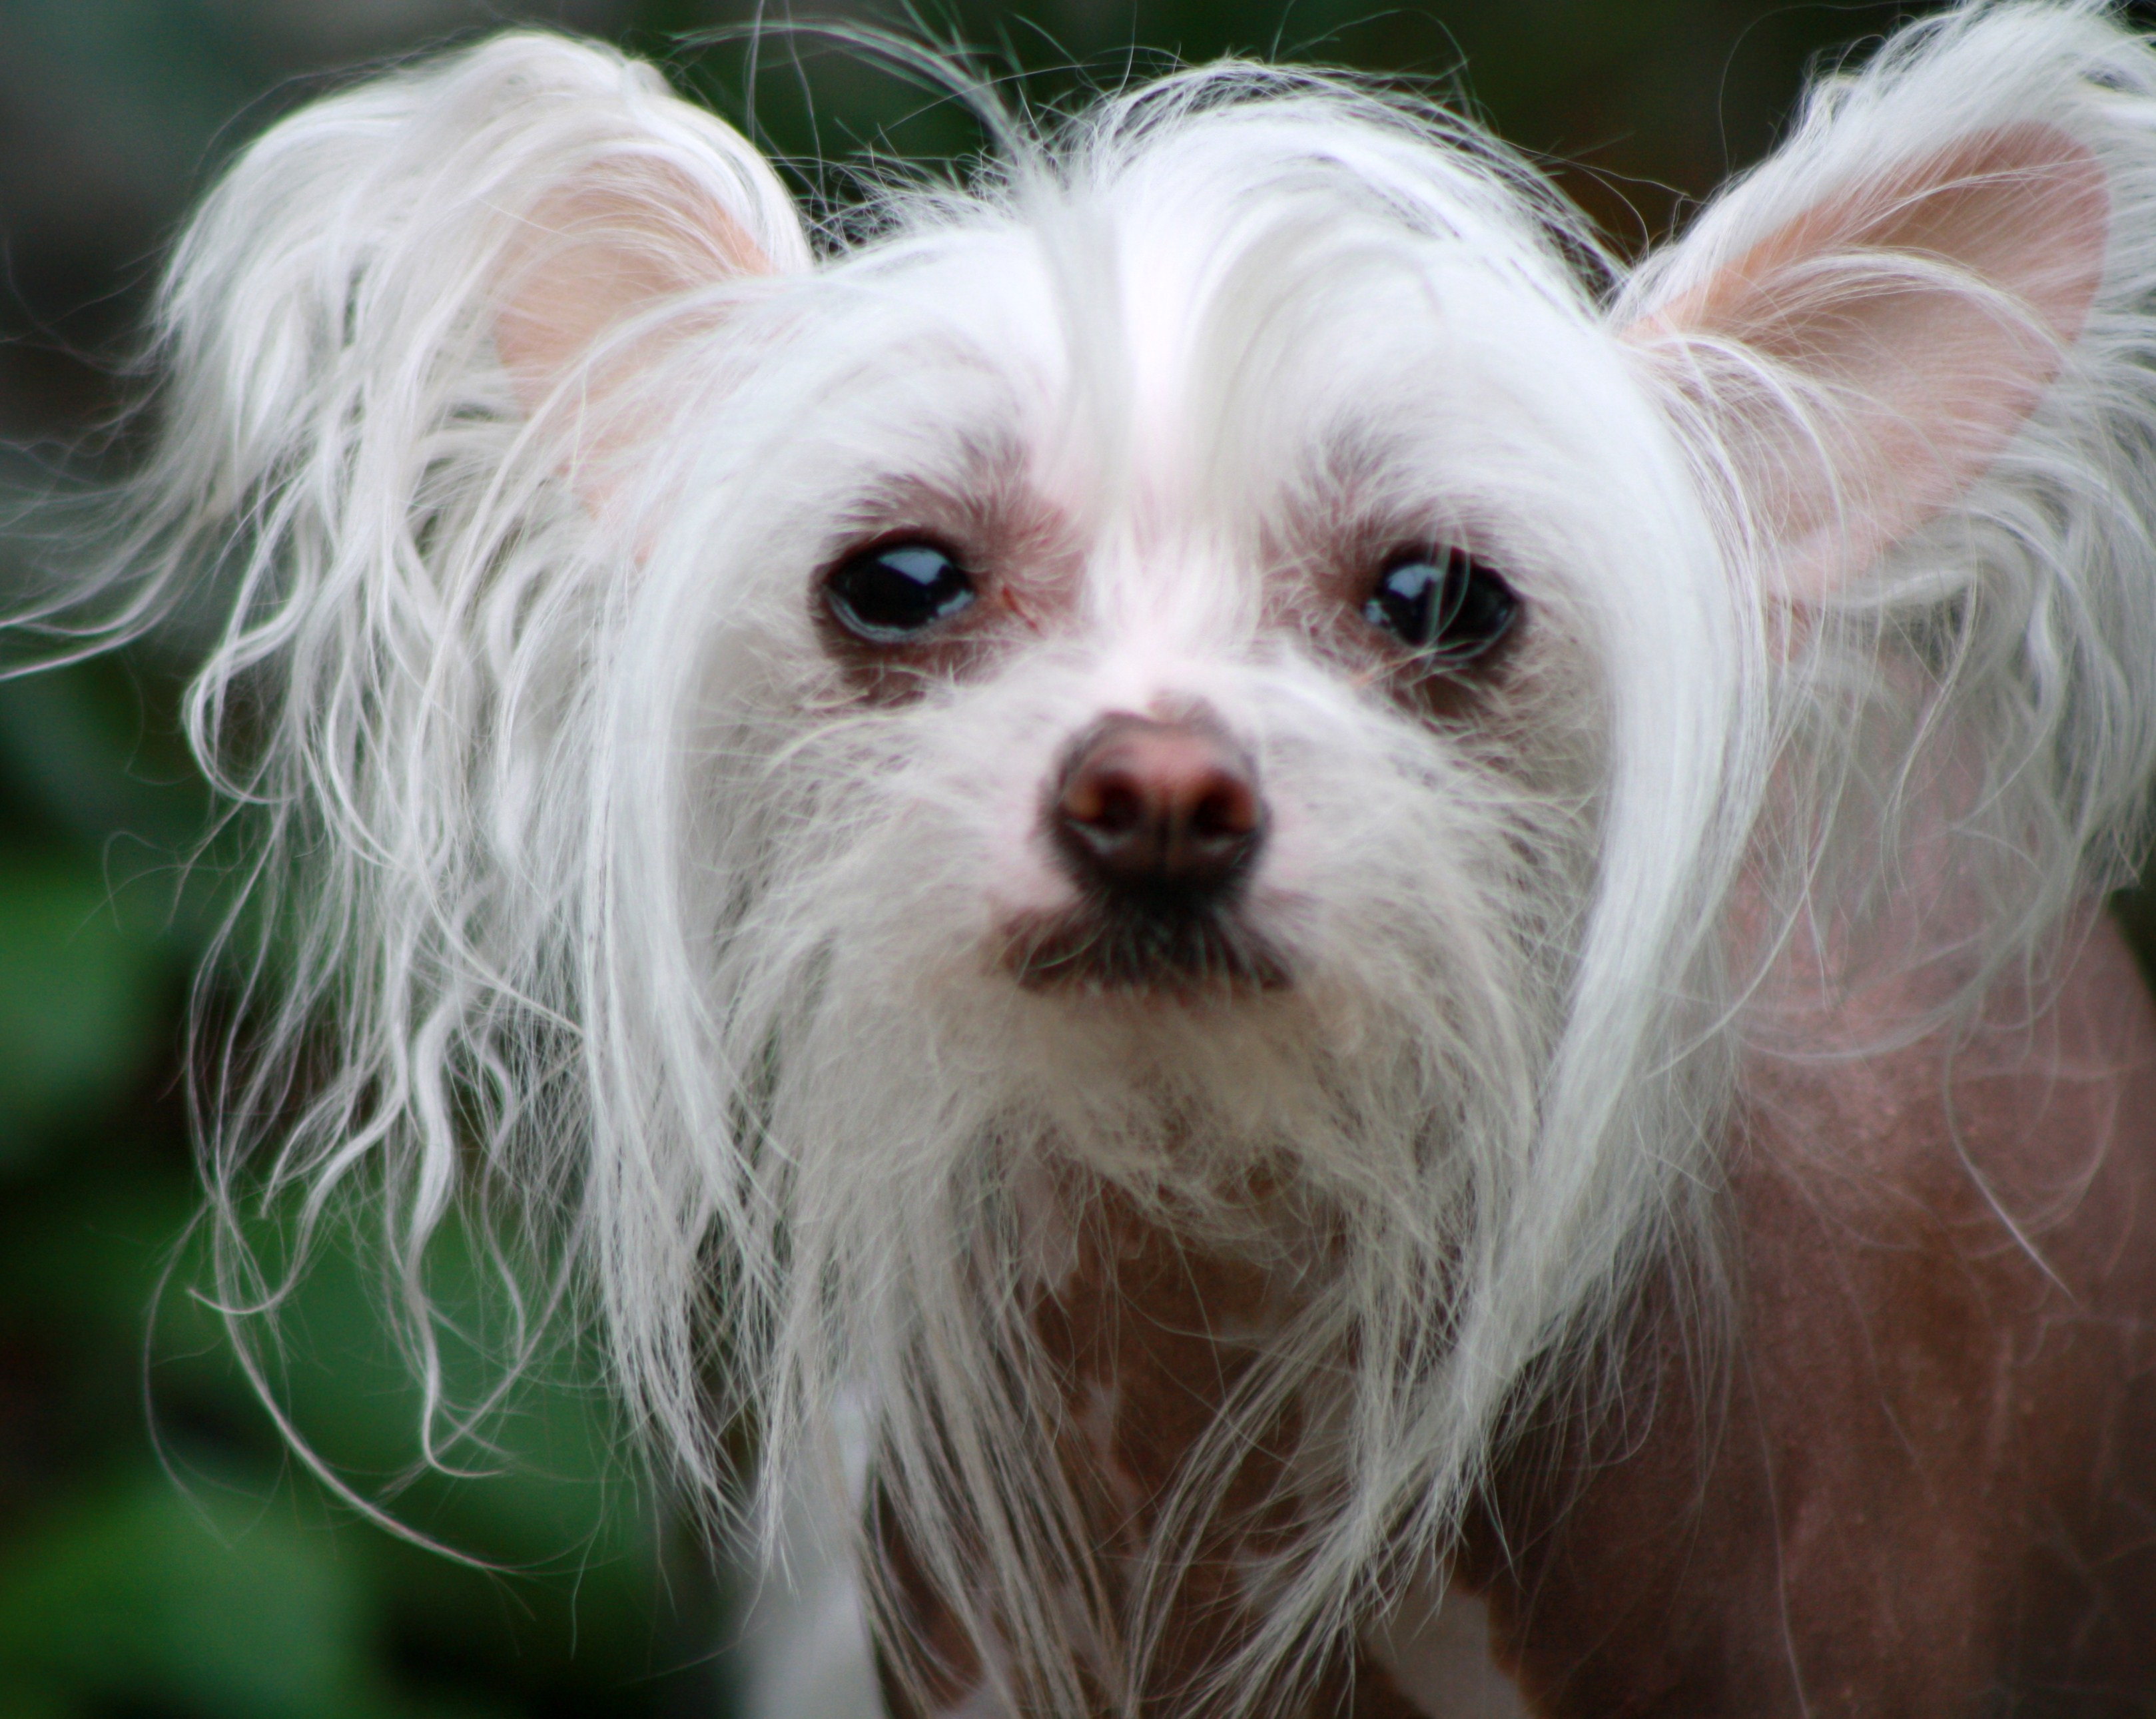 Chinese Crested dog wallpaper